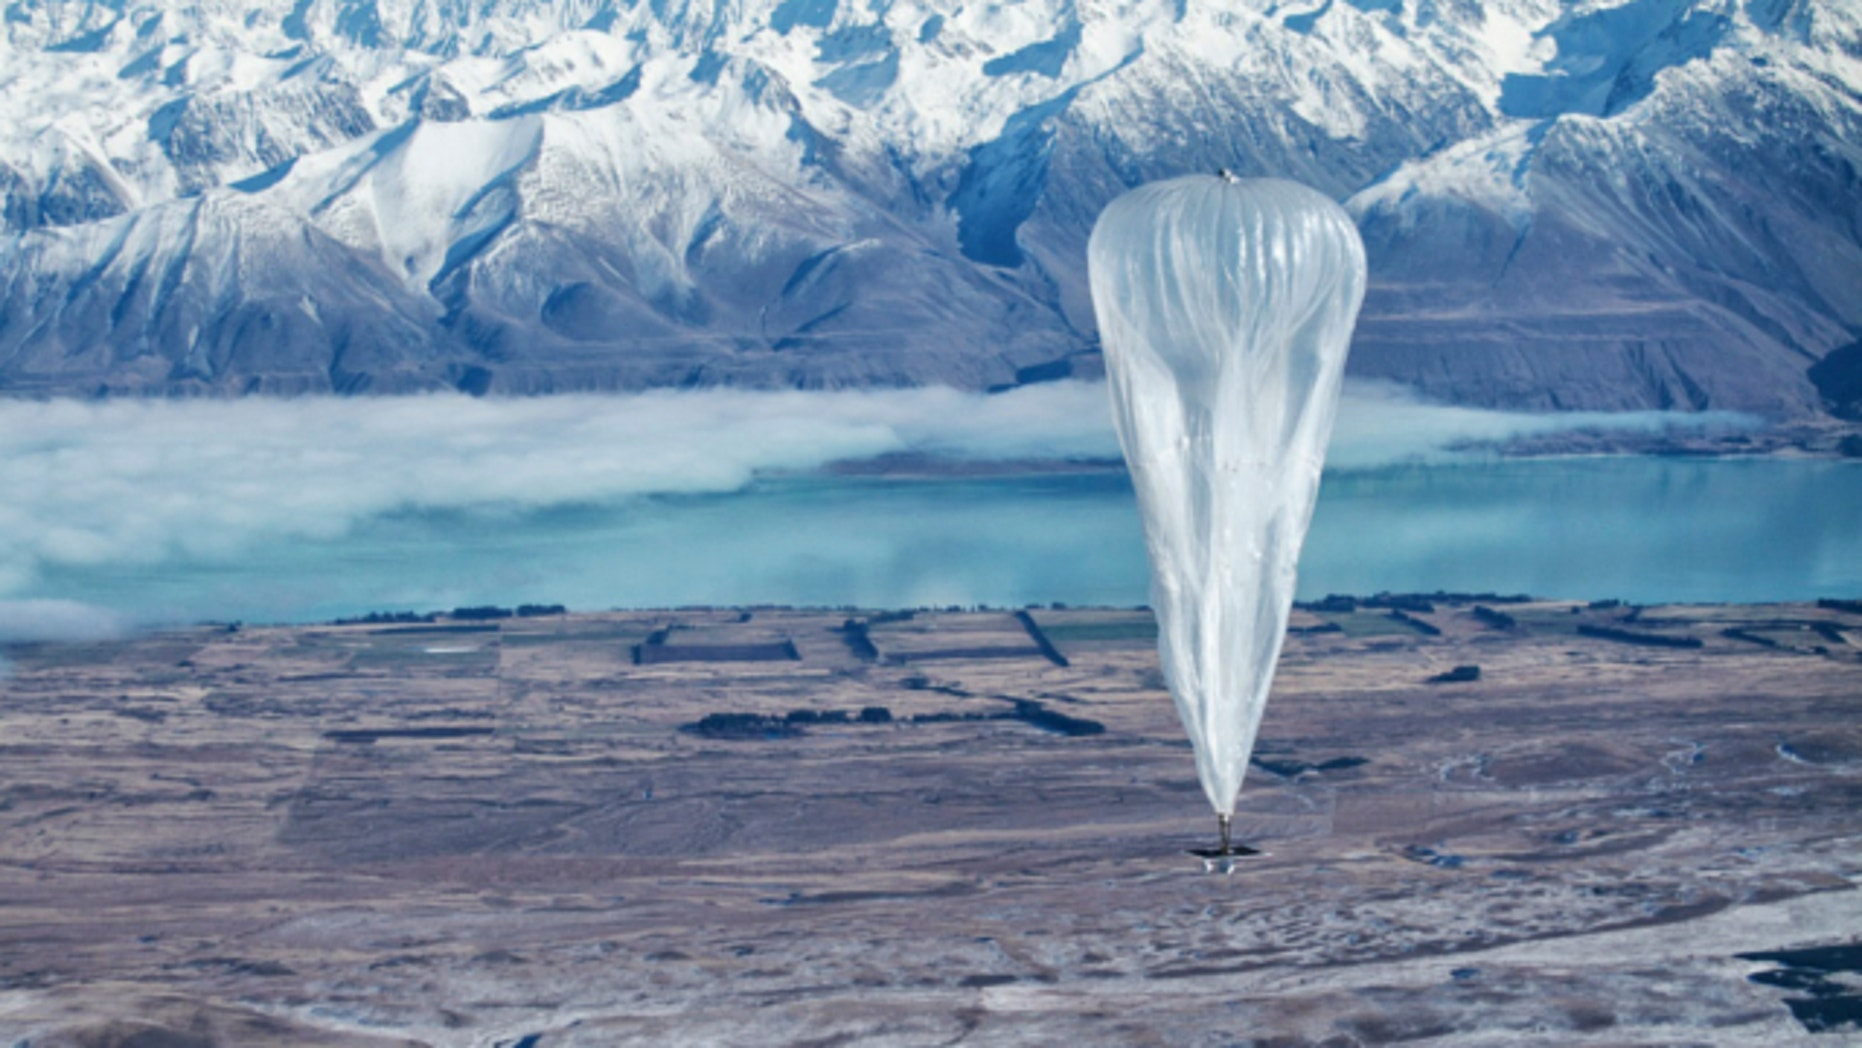 June 10, 2013: A Google balloon sails through the air with the Southern Alps mountains in the background, in Tekapo, New Zealand.